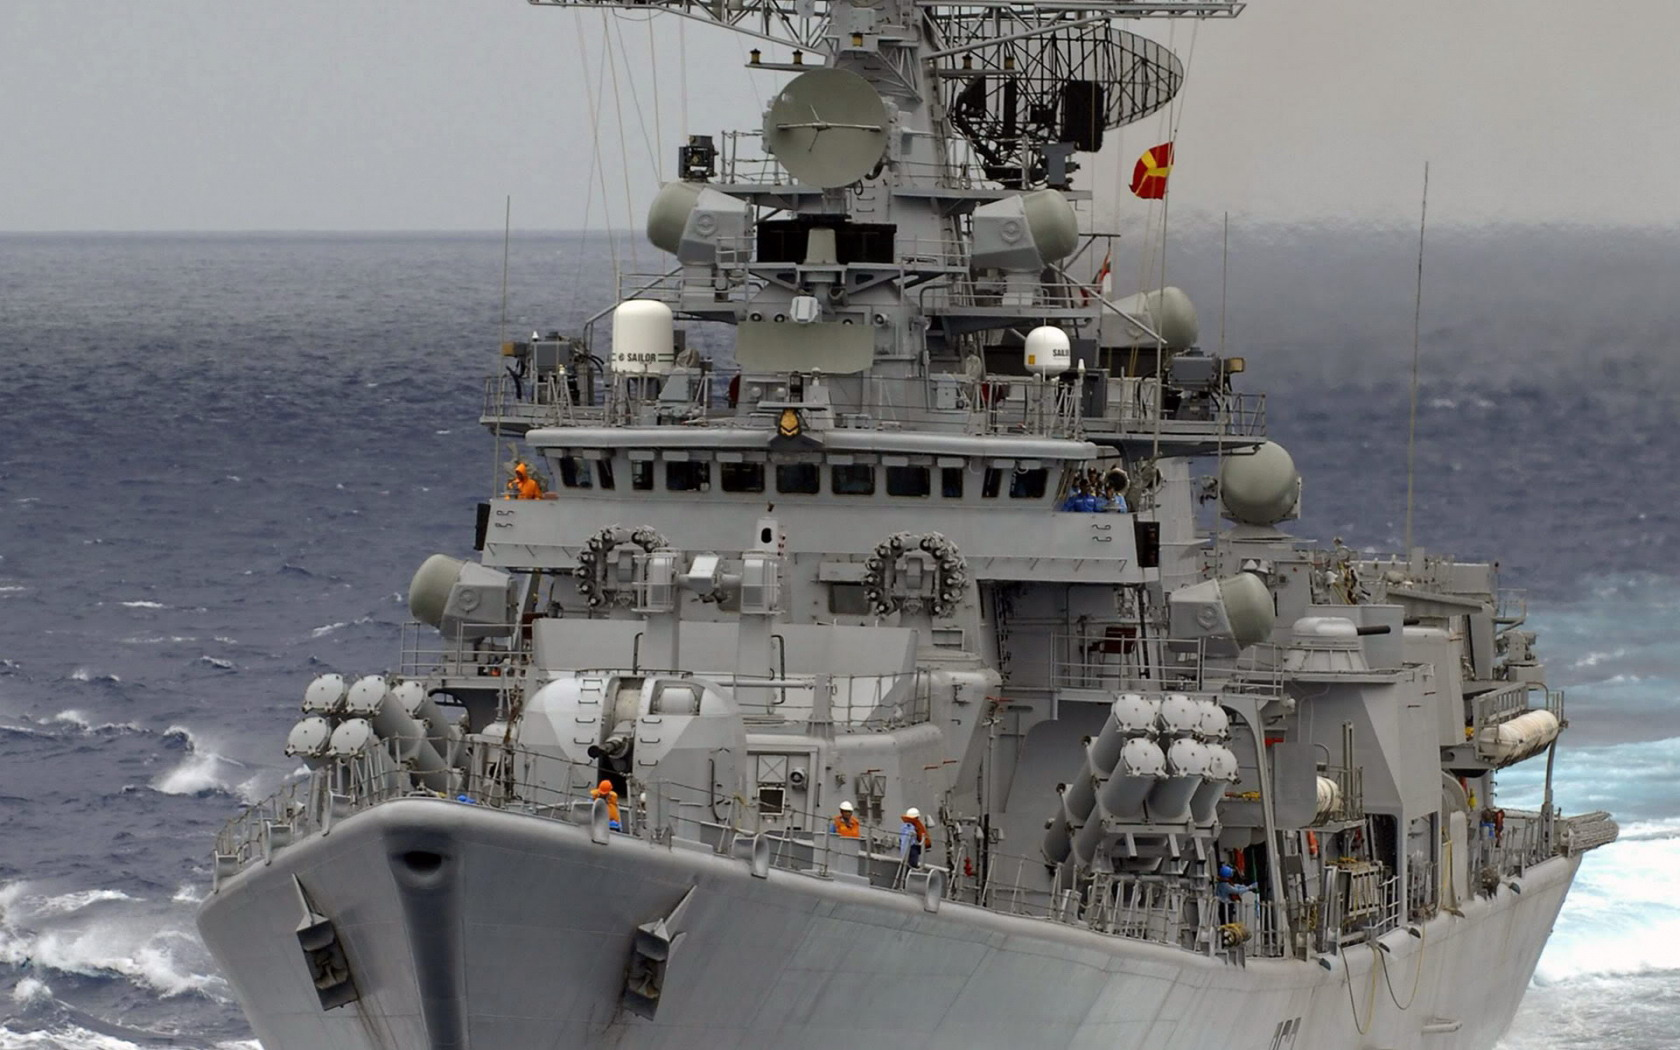 Indian Navy Image Gallery Wallpapers: [48+] Indian Army HD Wallpaper On WallpaperSafari